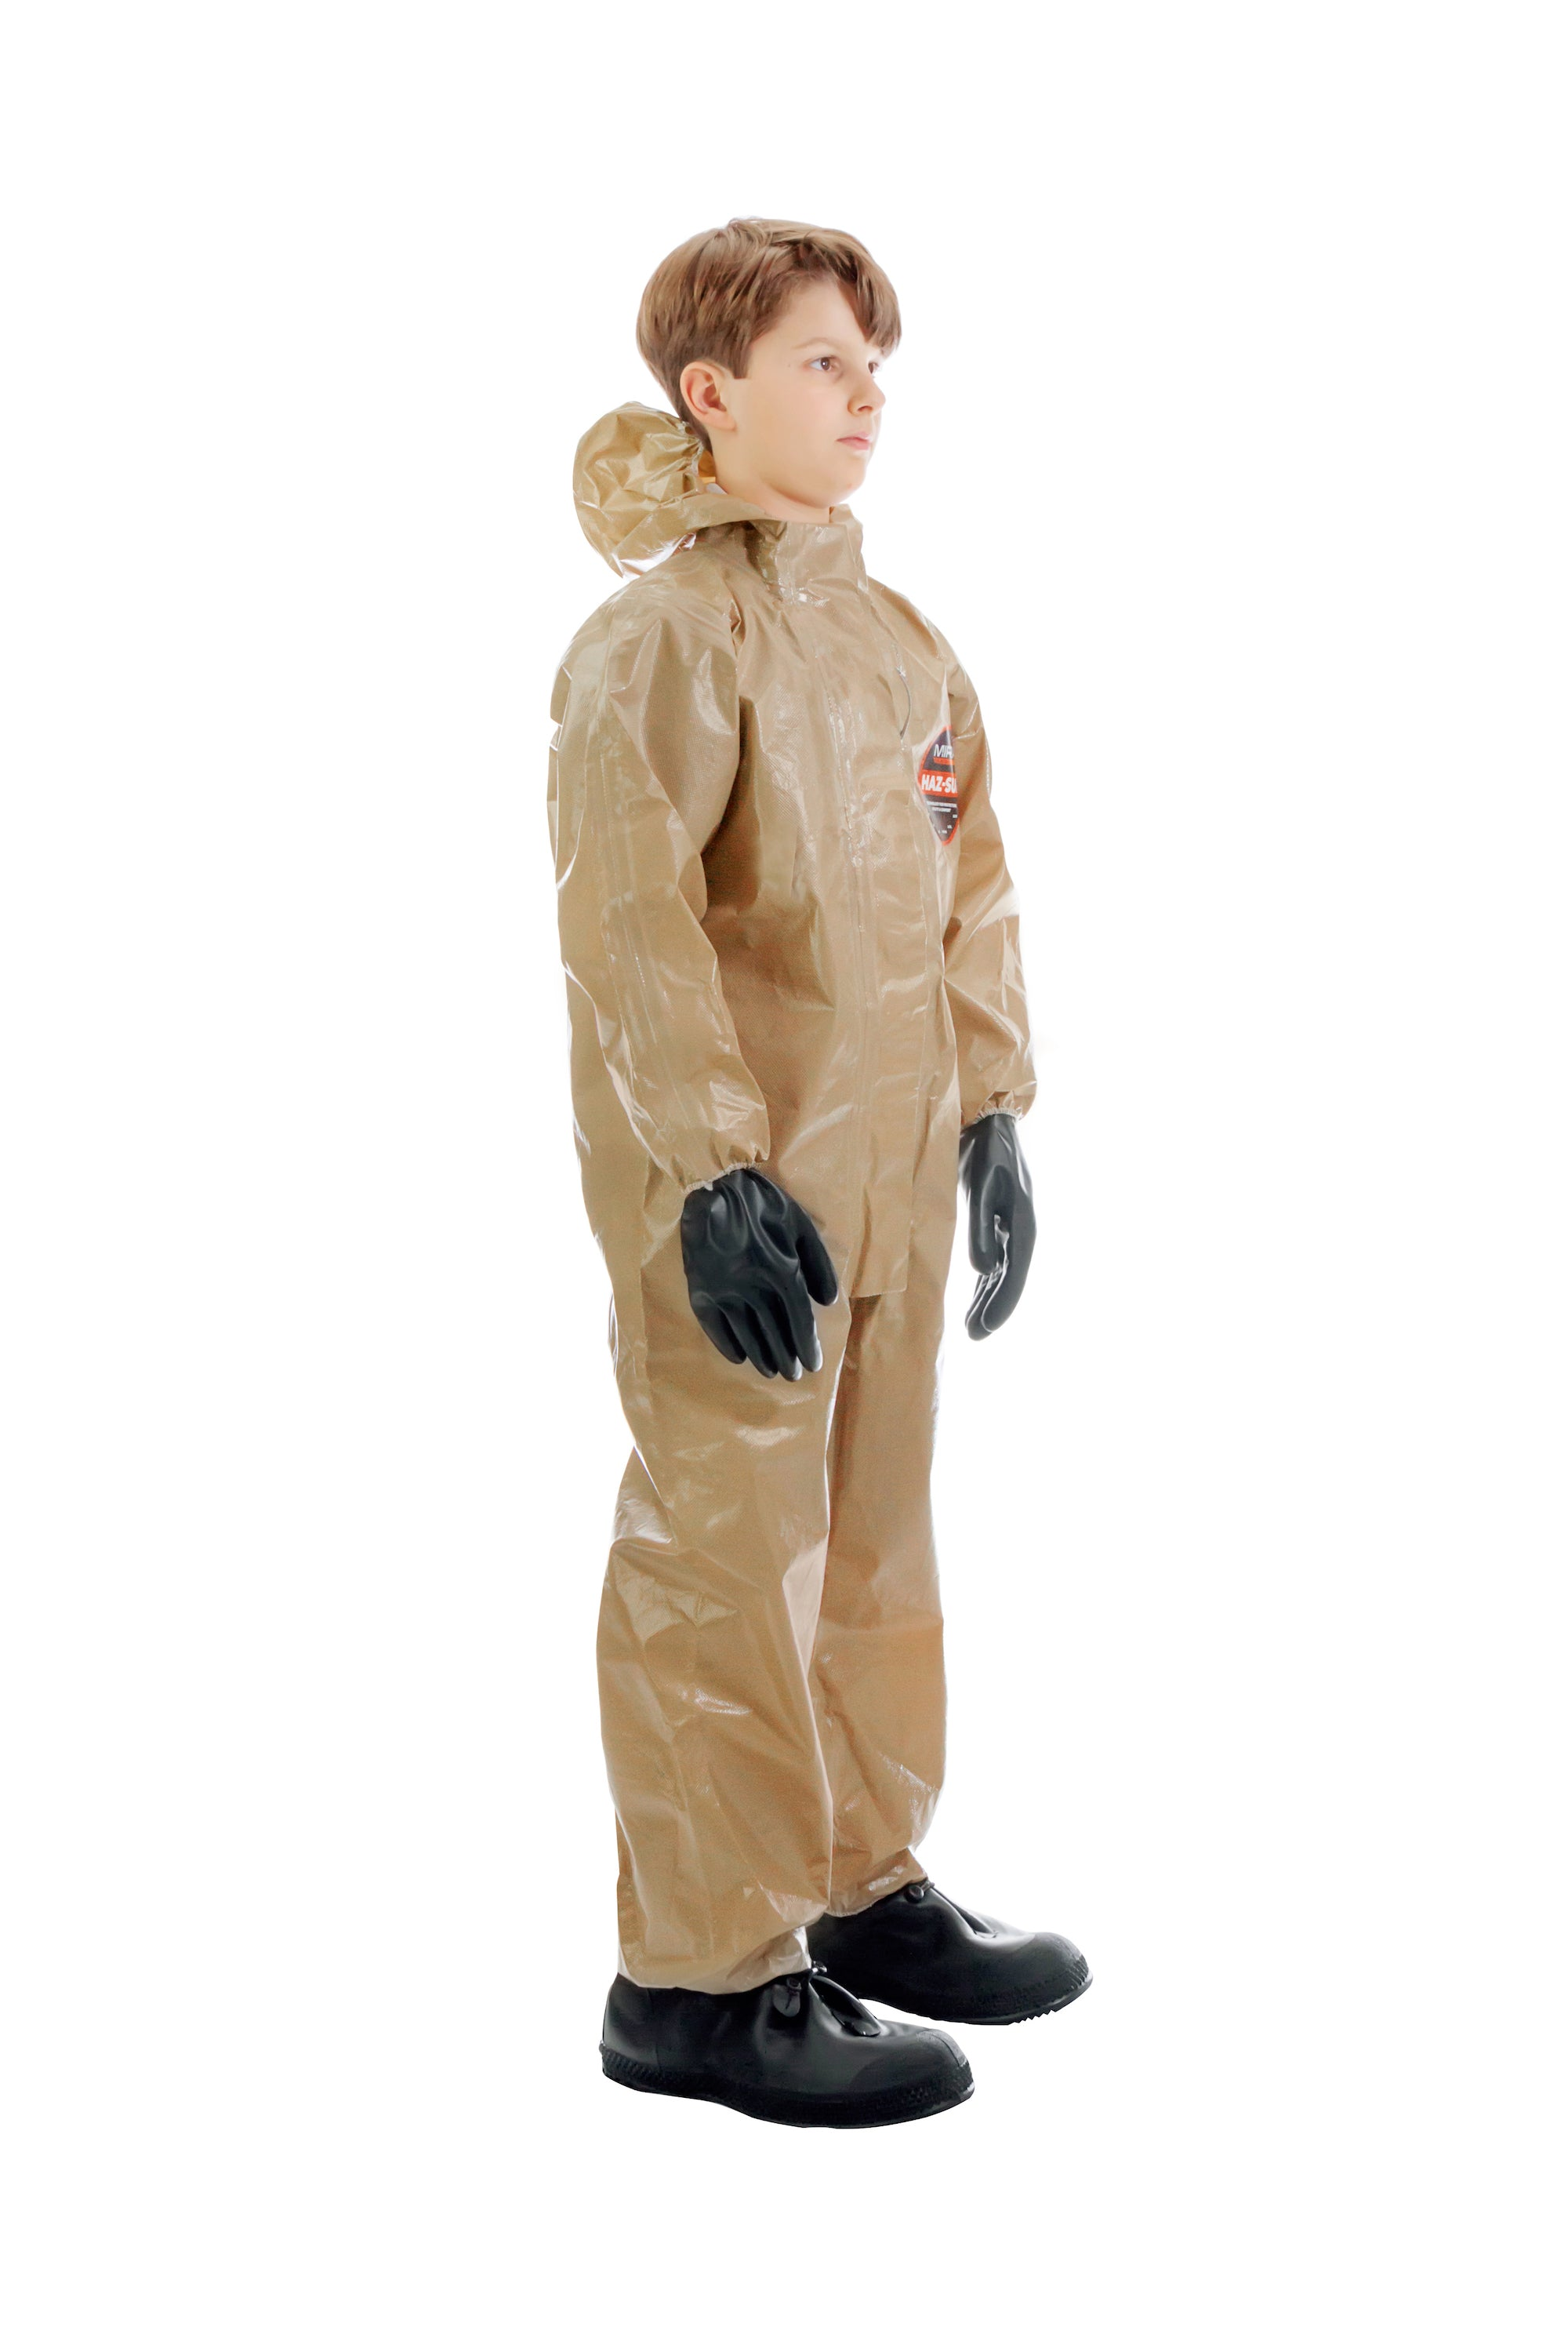 Three quarter view of a child wearing the HAZ-SUIT HAZMAT Suit